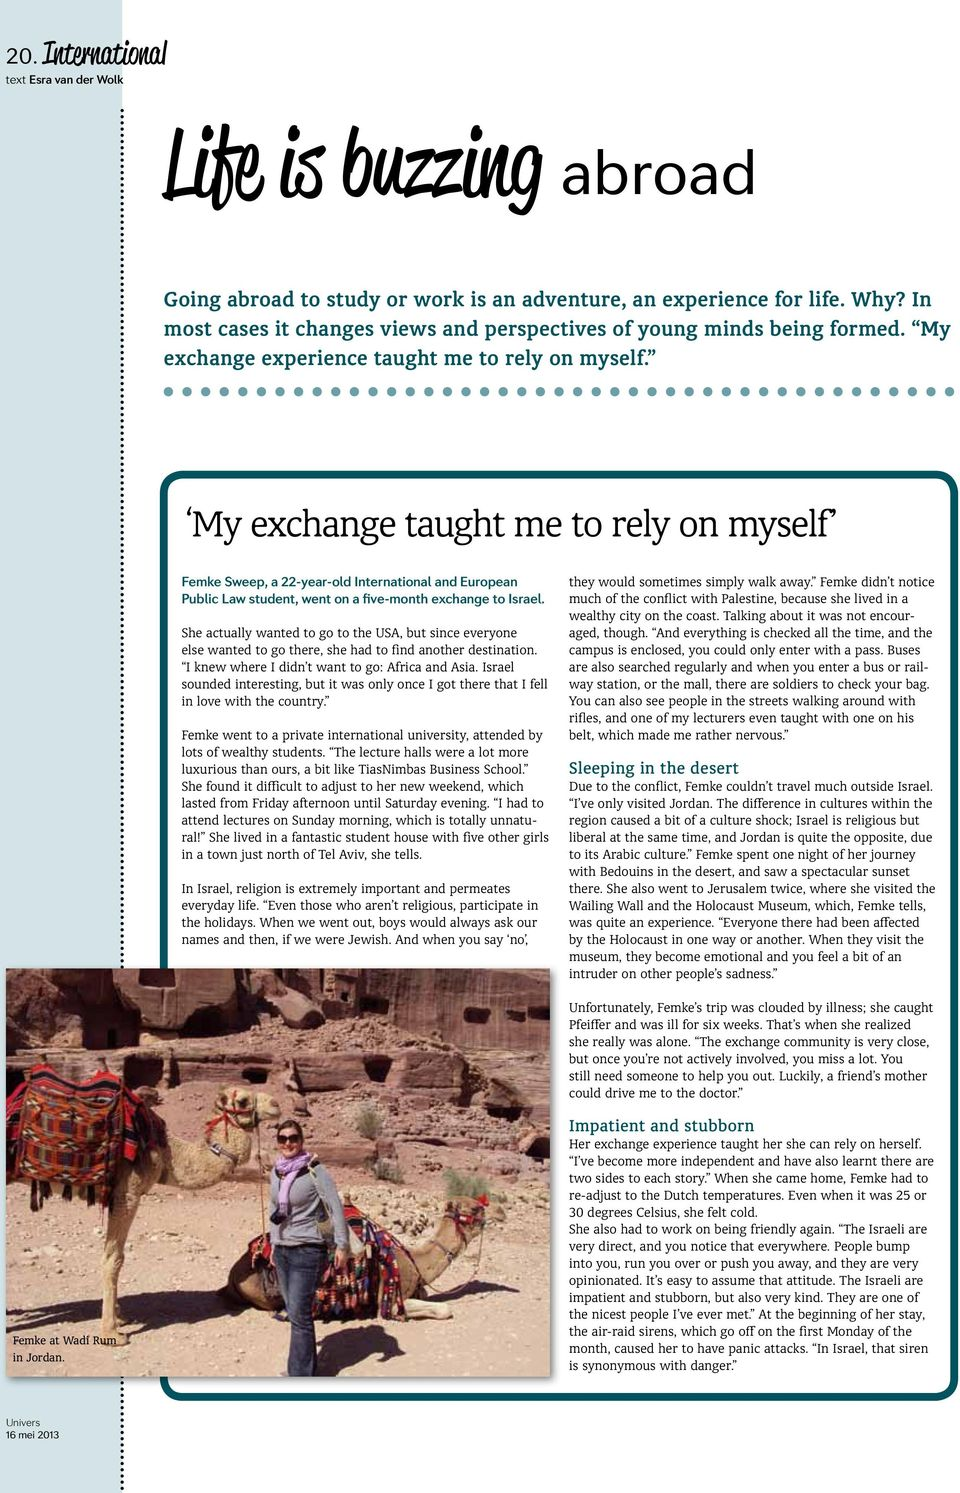 My exchange taught me to rely on myself Femke Sweep, a 22-year-old International and European Public Law student, went on a five-month exchange to Israel.